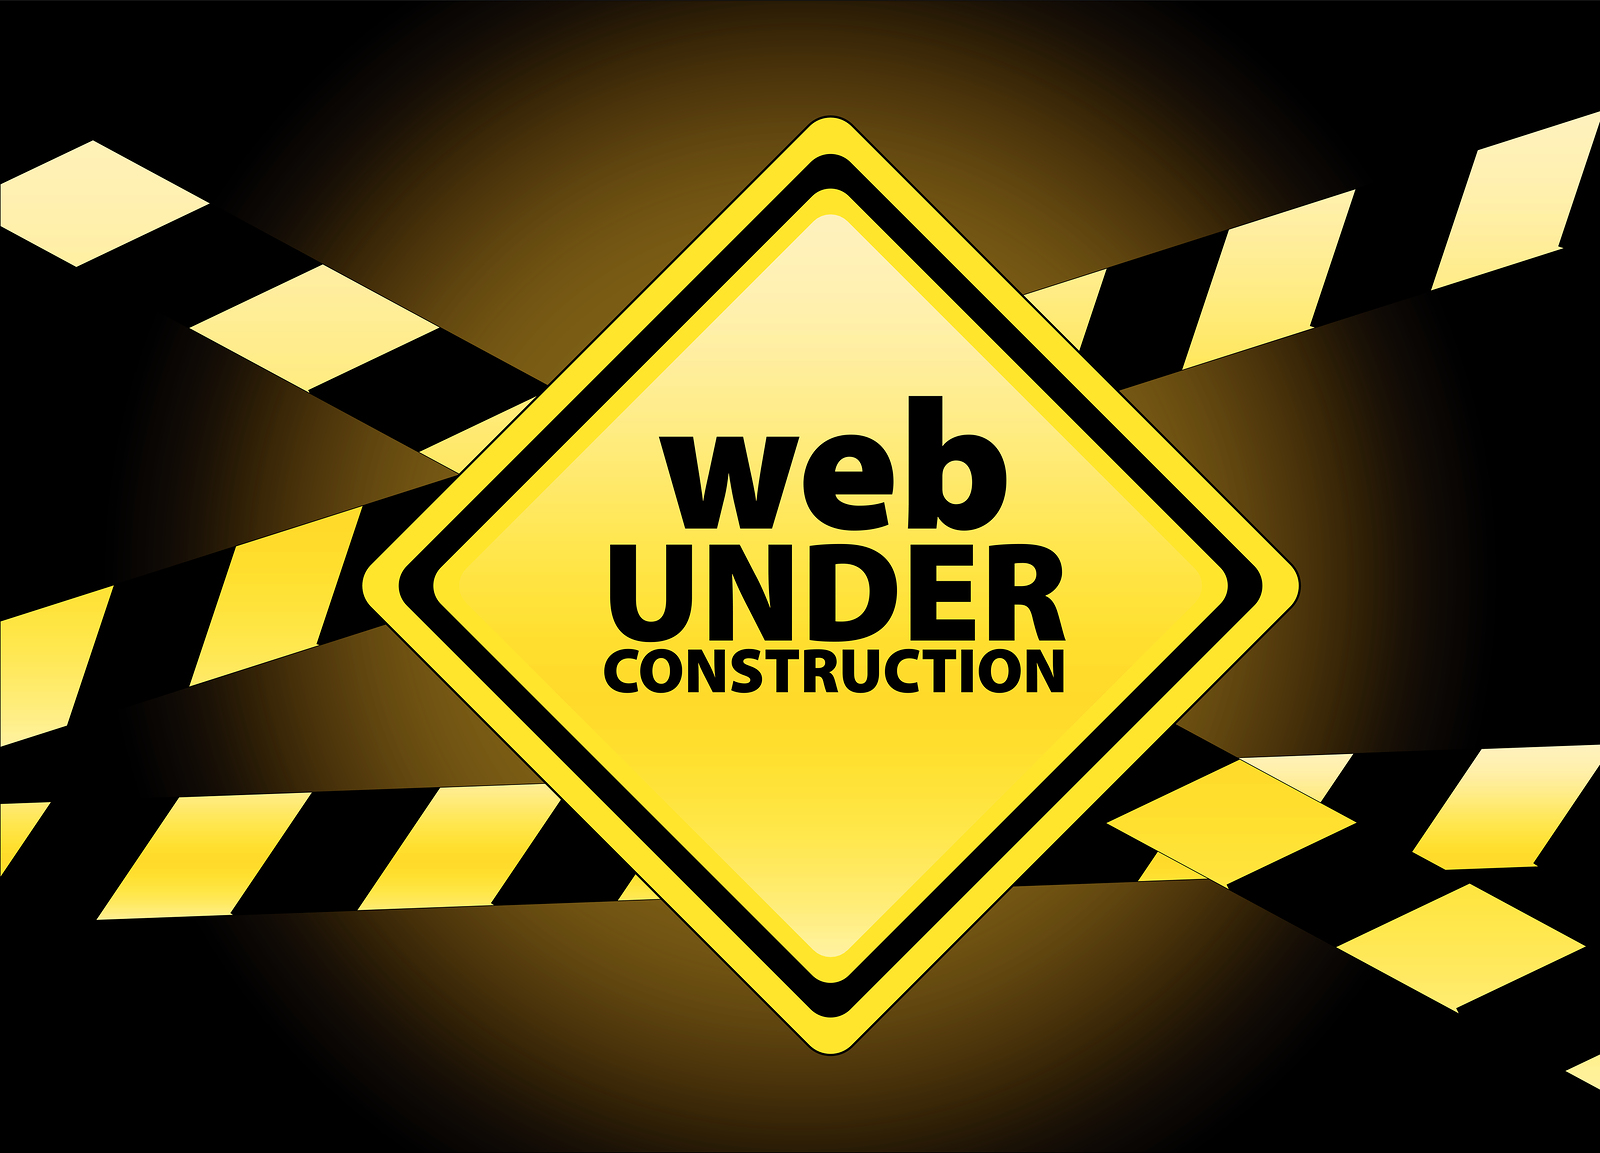 Web-under-construction.jpeg